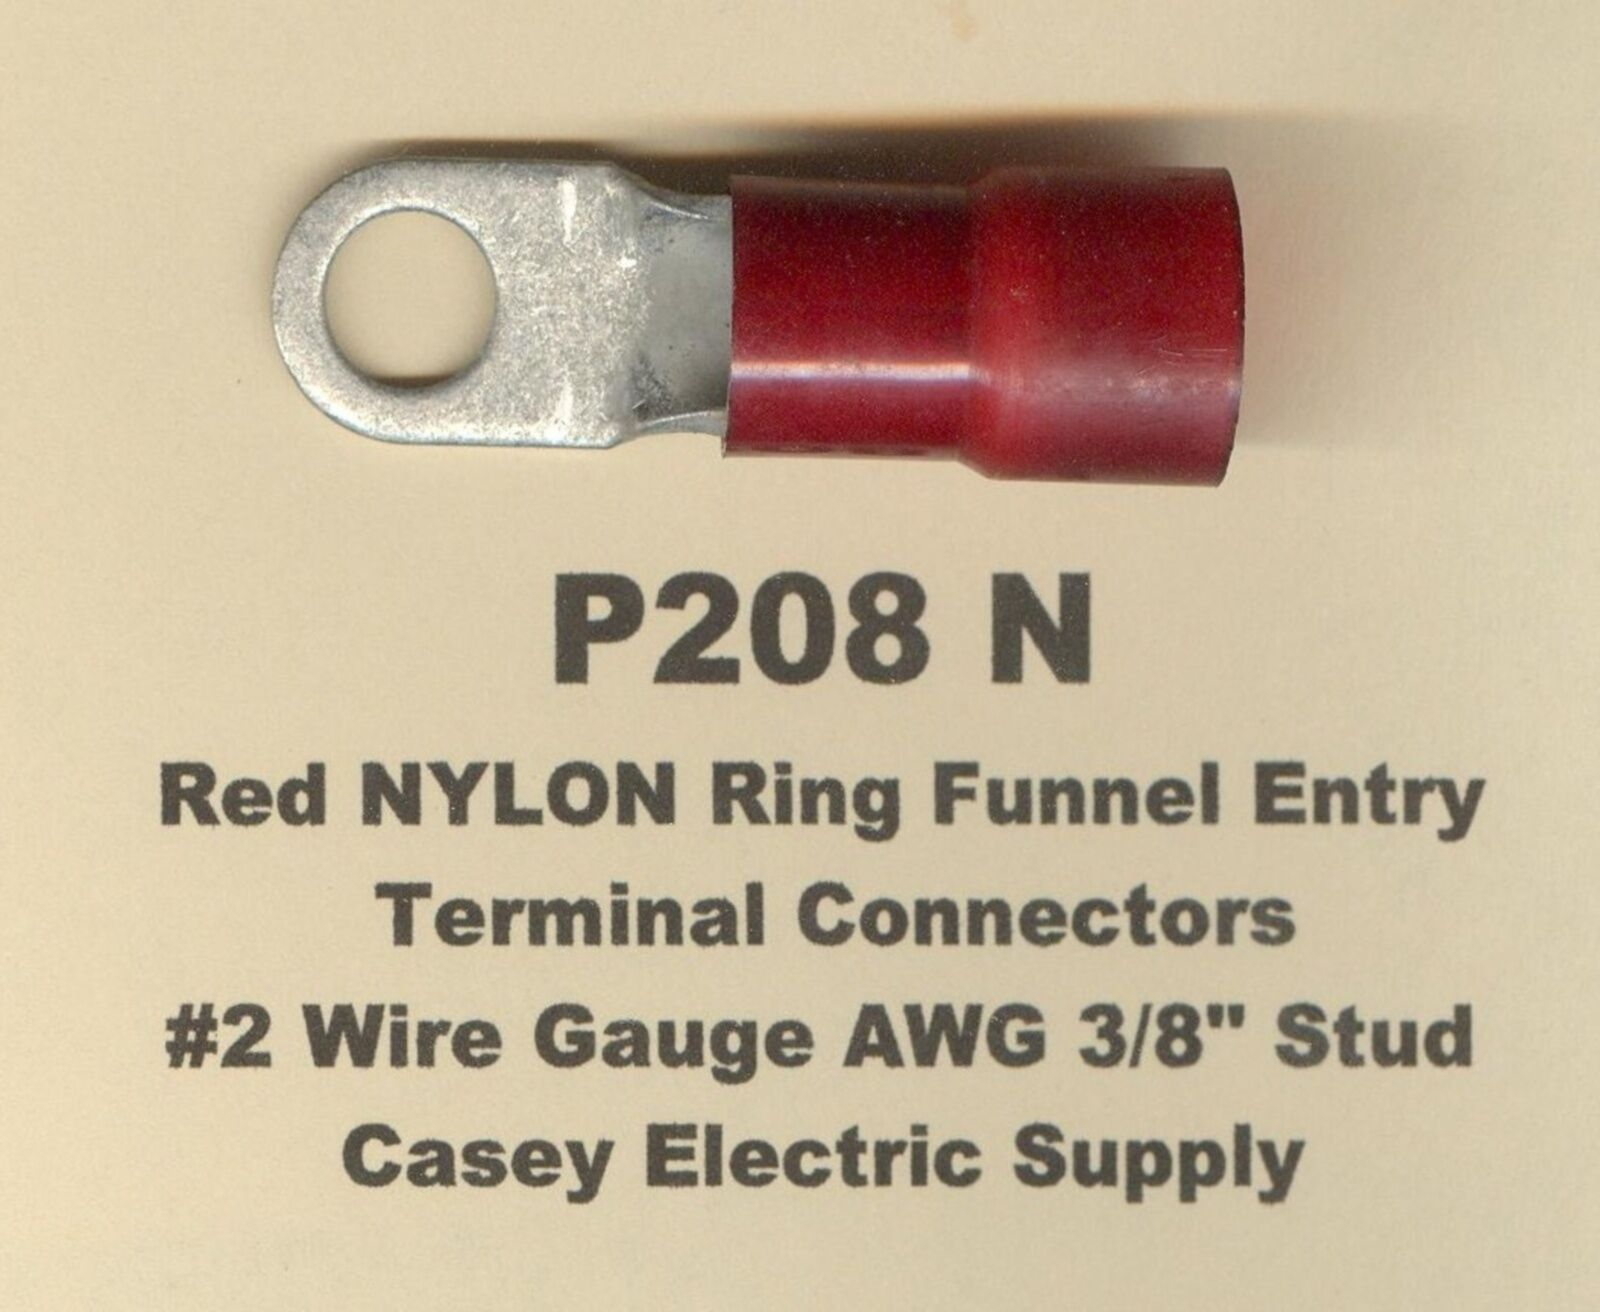 5 red nylon insulated ring terminal connectors 2 wire gauge awg 38 picture 1 of 2 greentooth Images